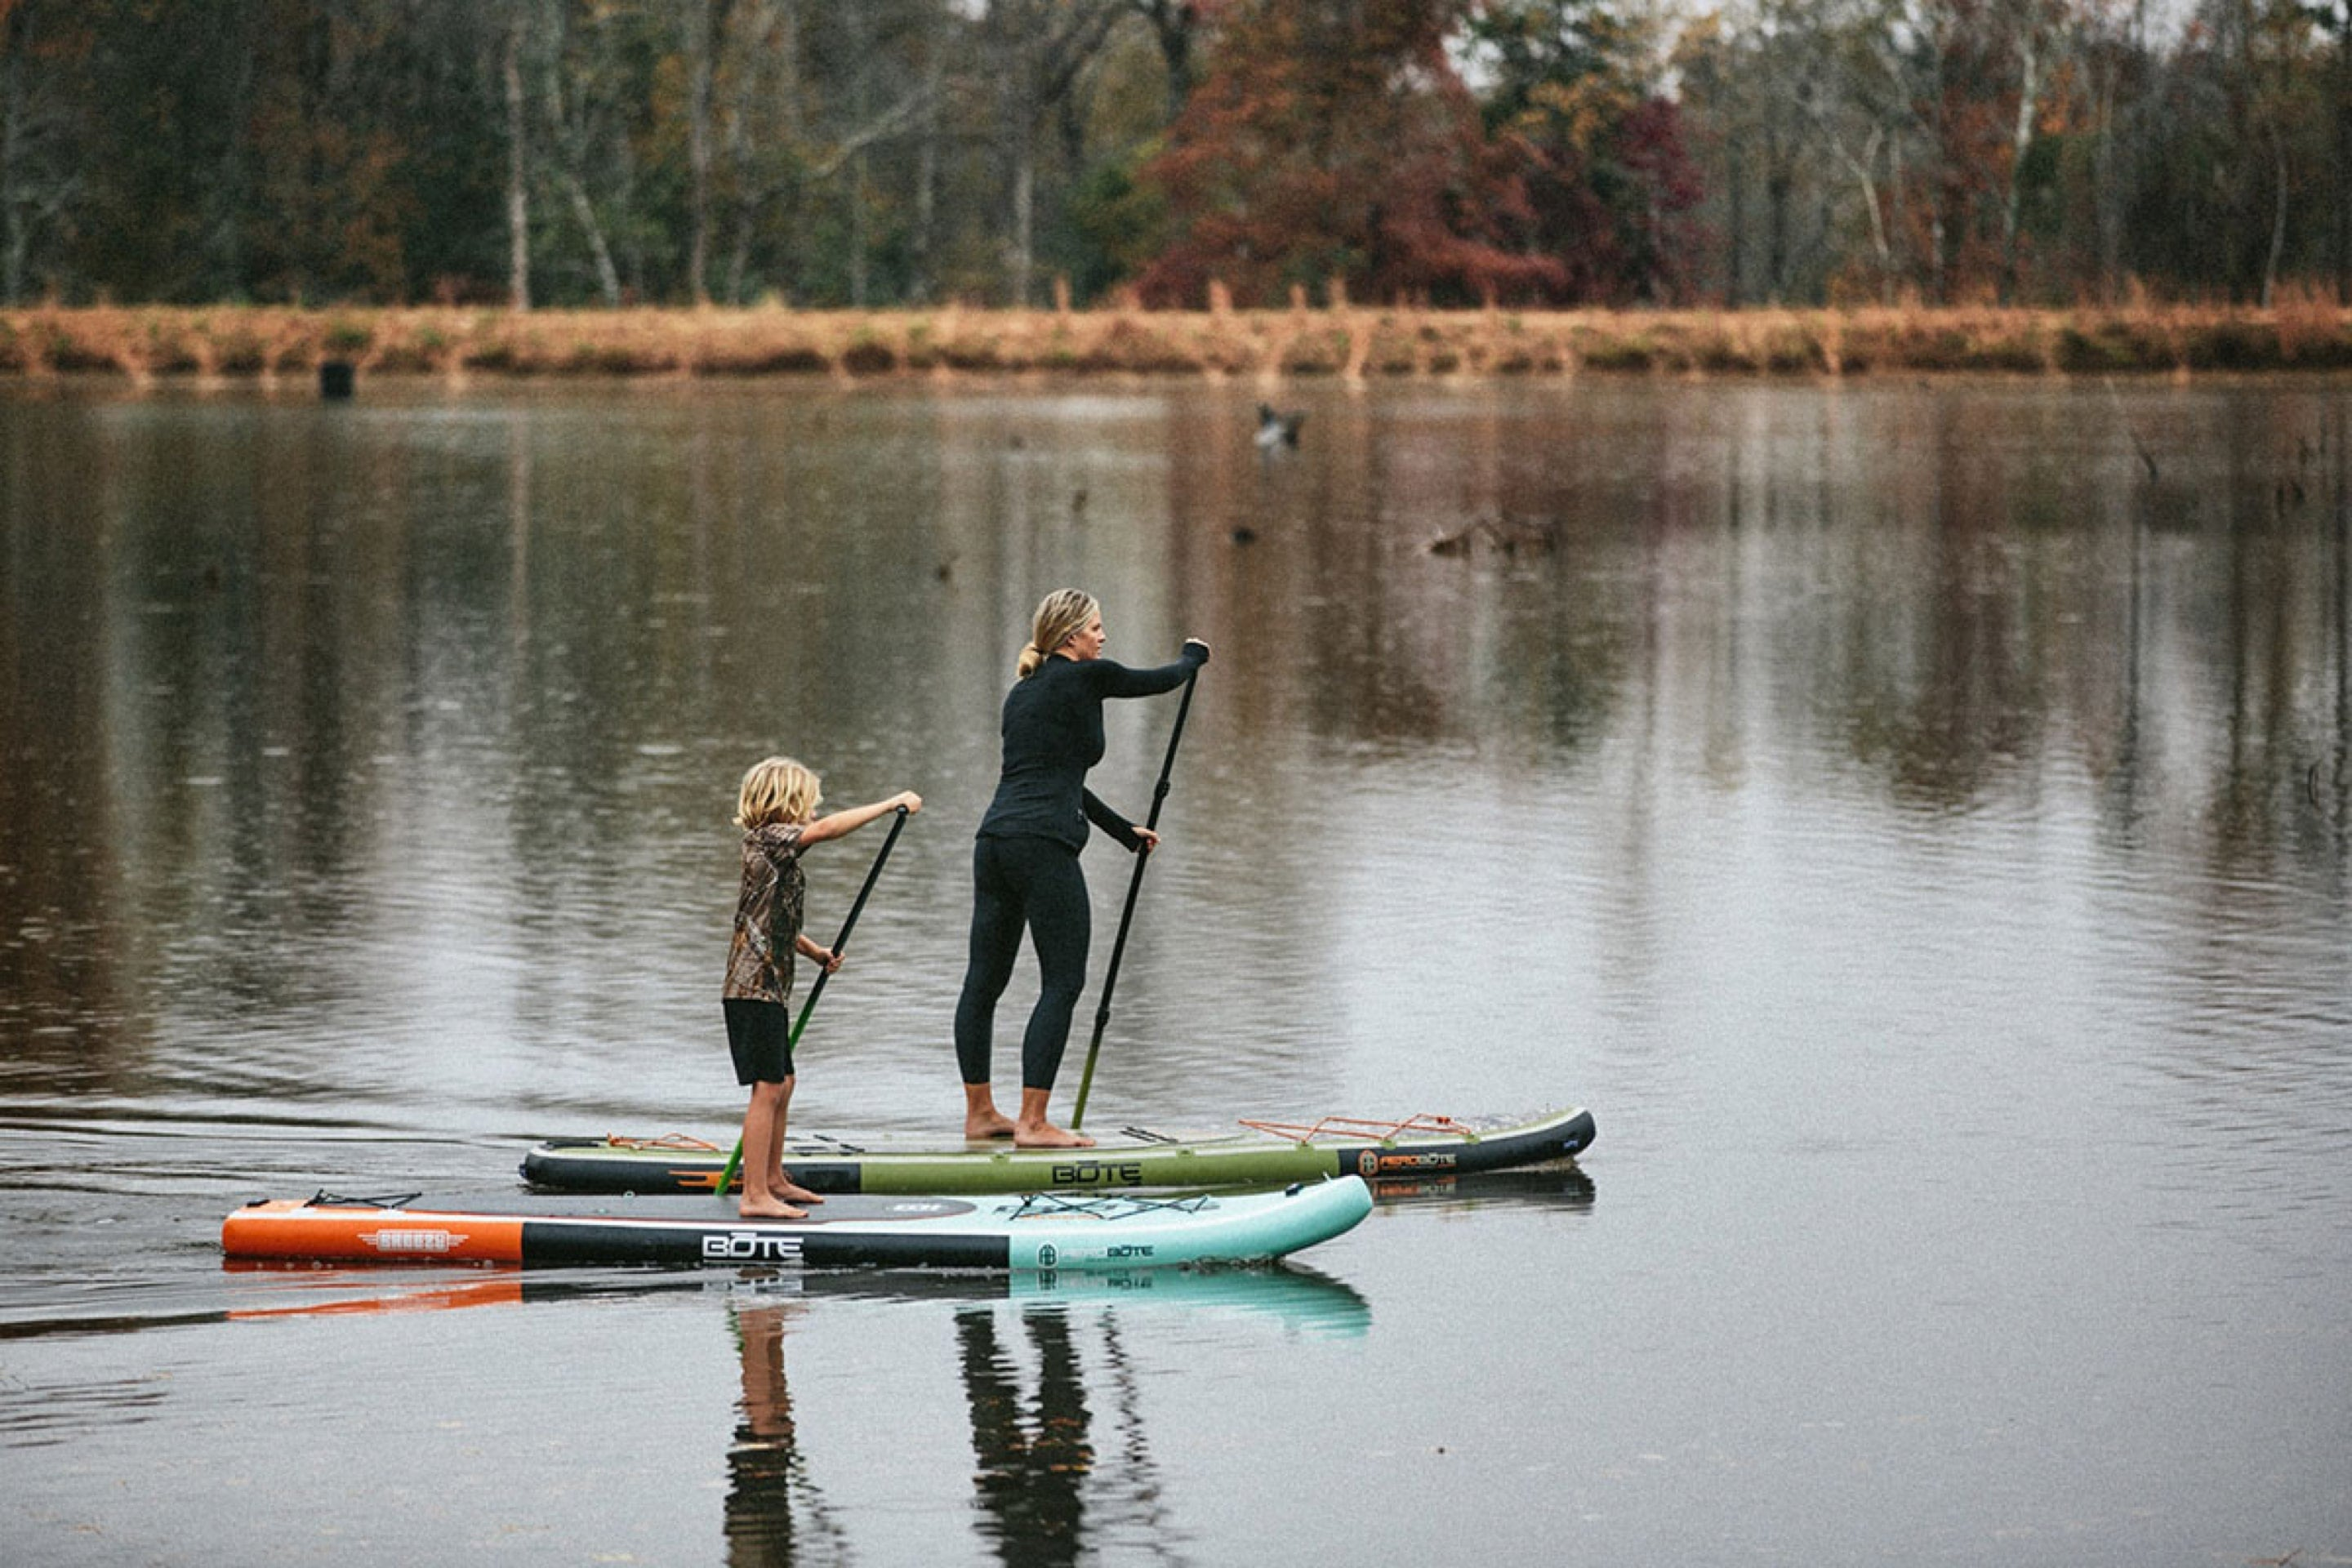 Mom and son using BOTE paddle boards